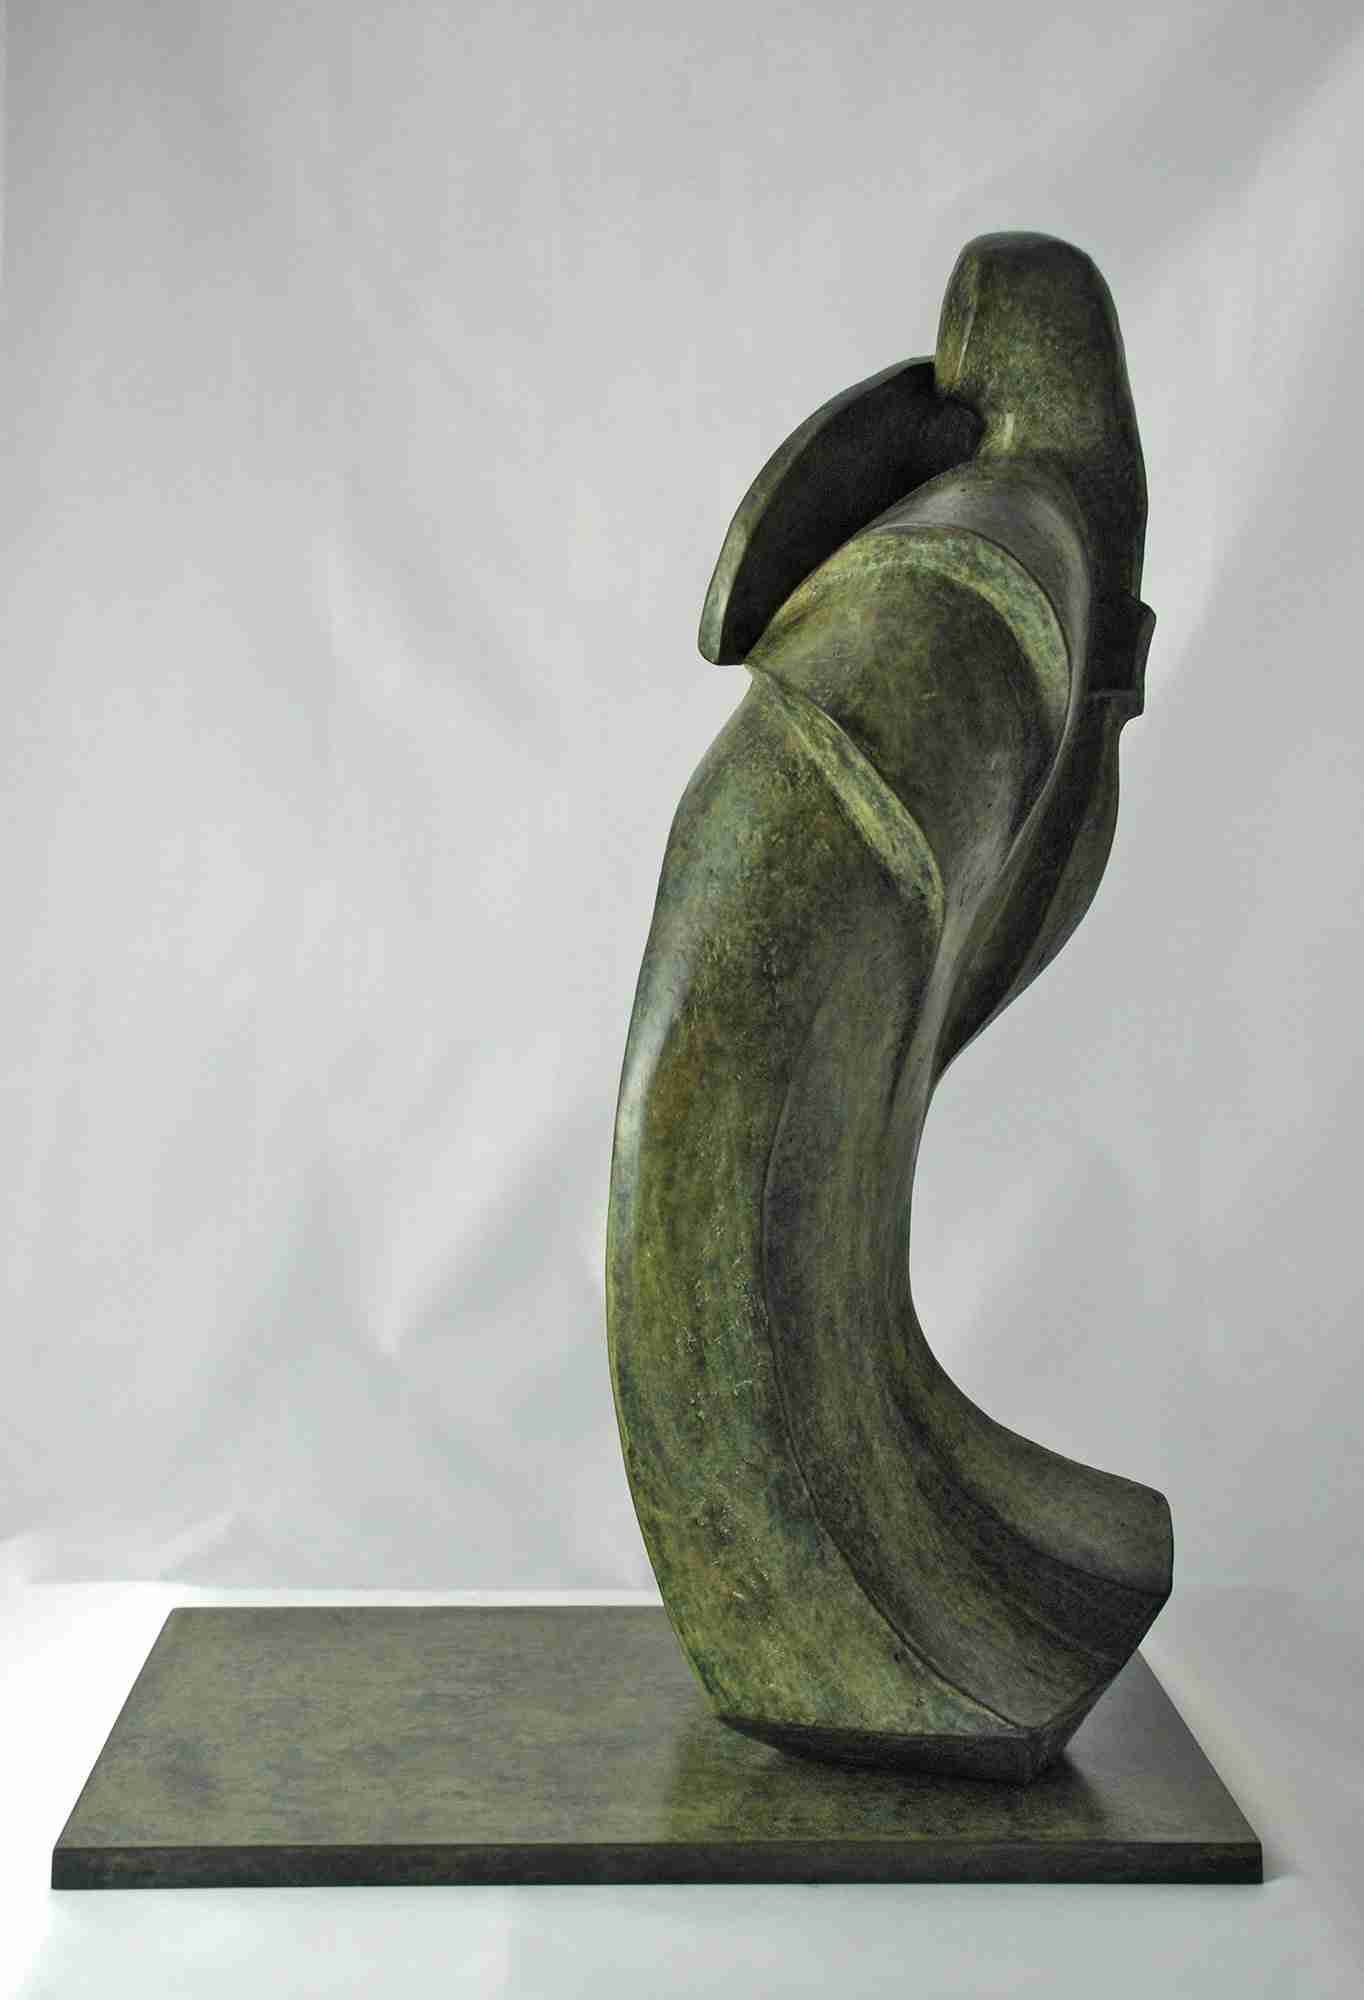 42 x 17 x 15 cm Bronze. Limited edition, 12 numbered copies.